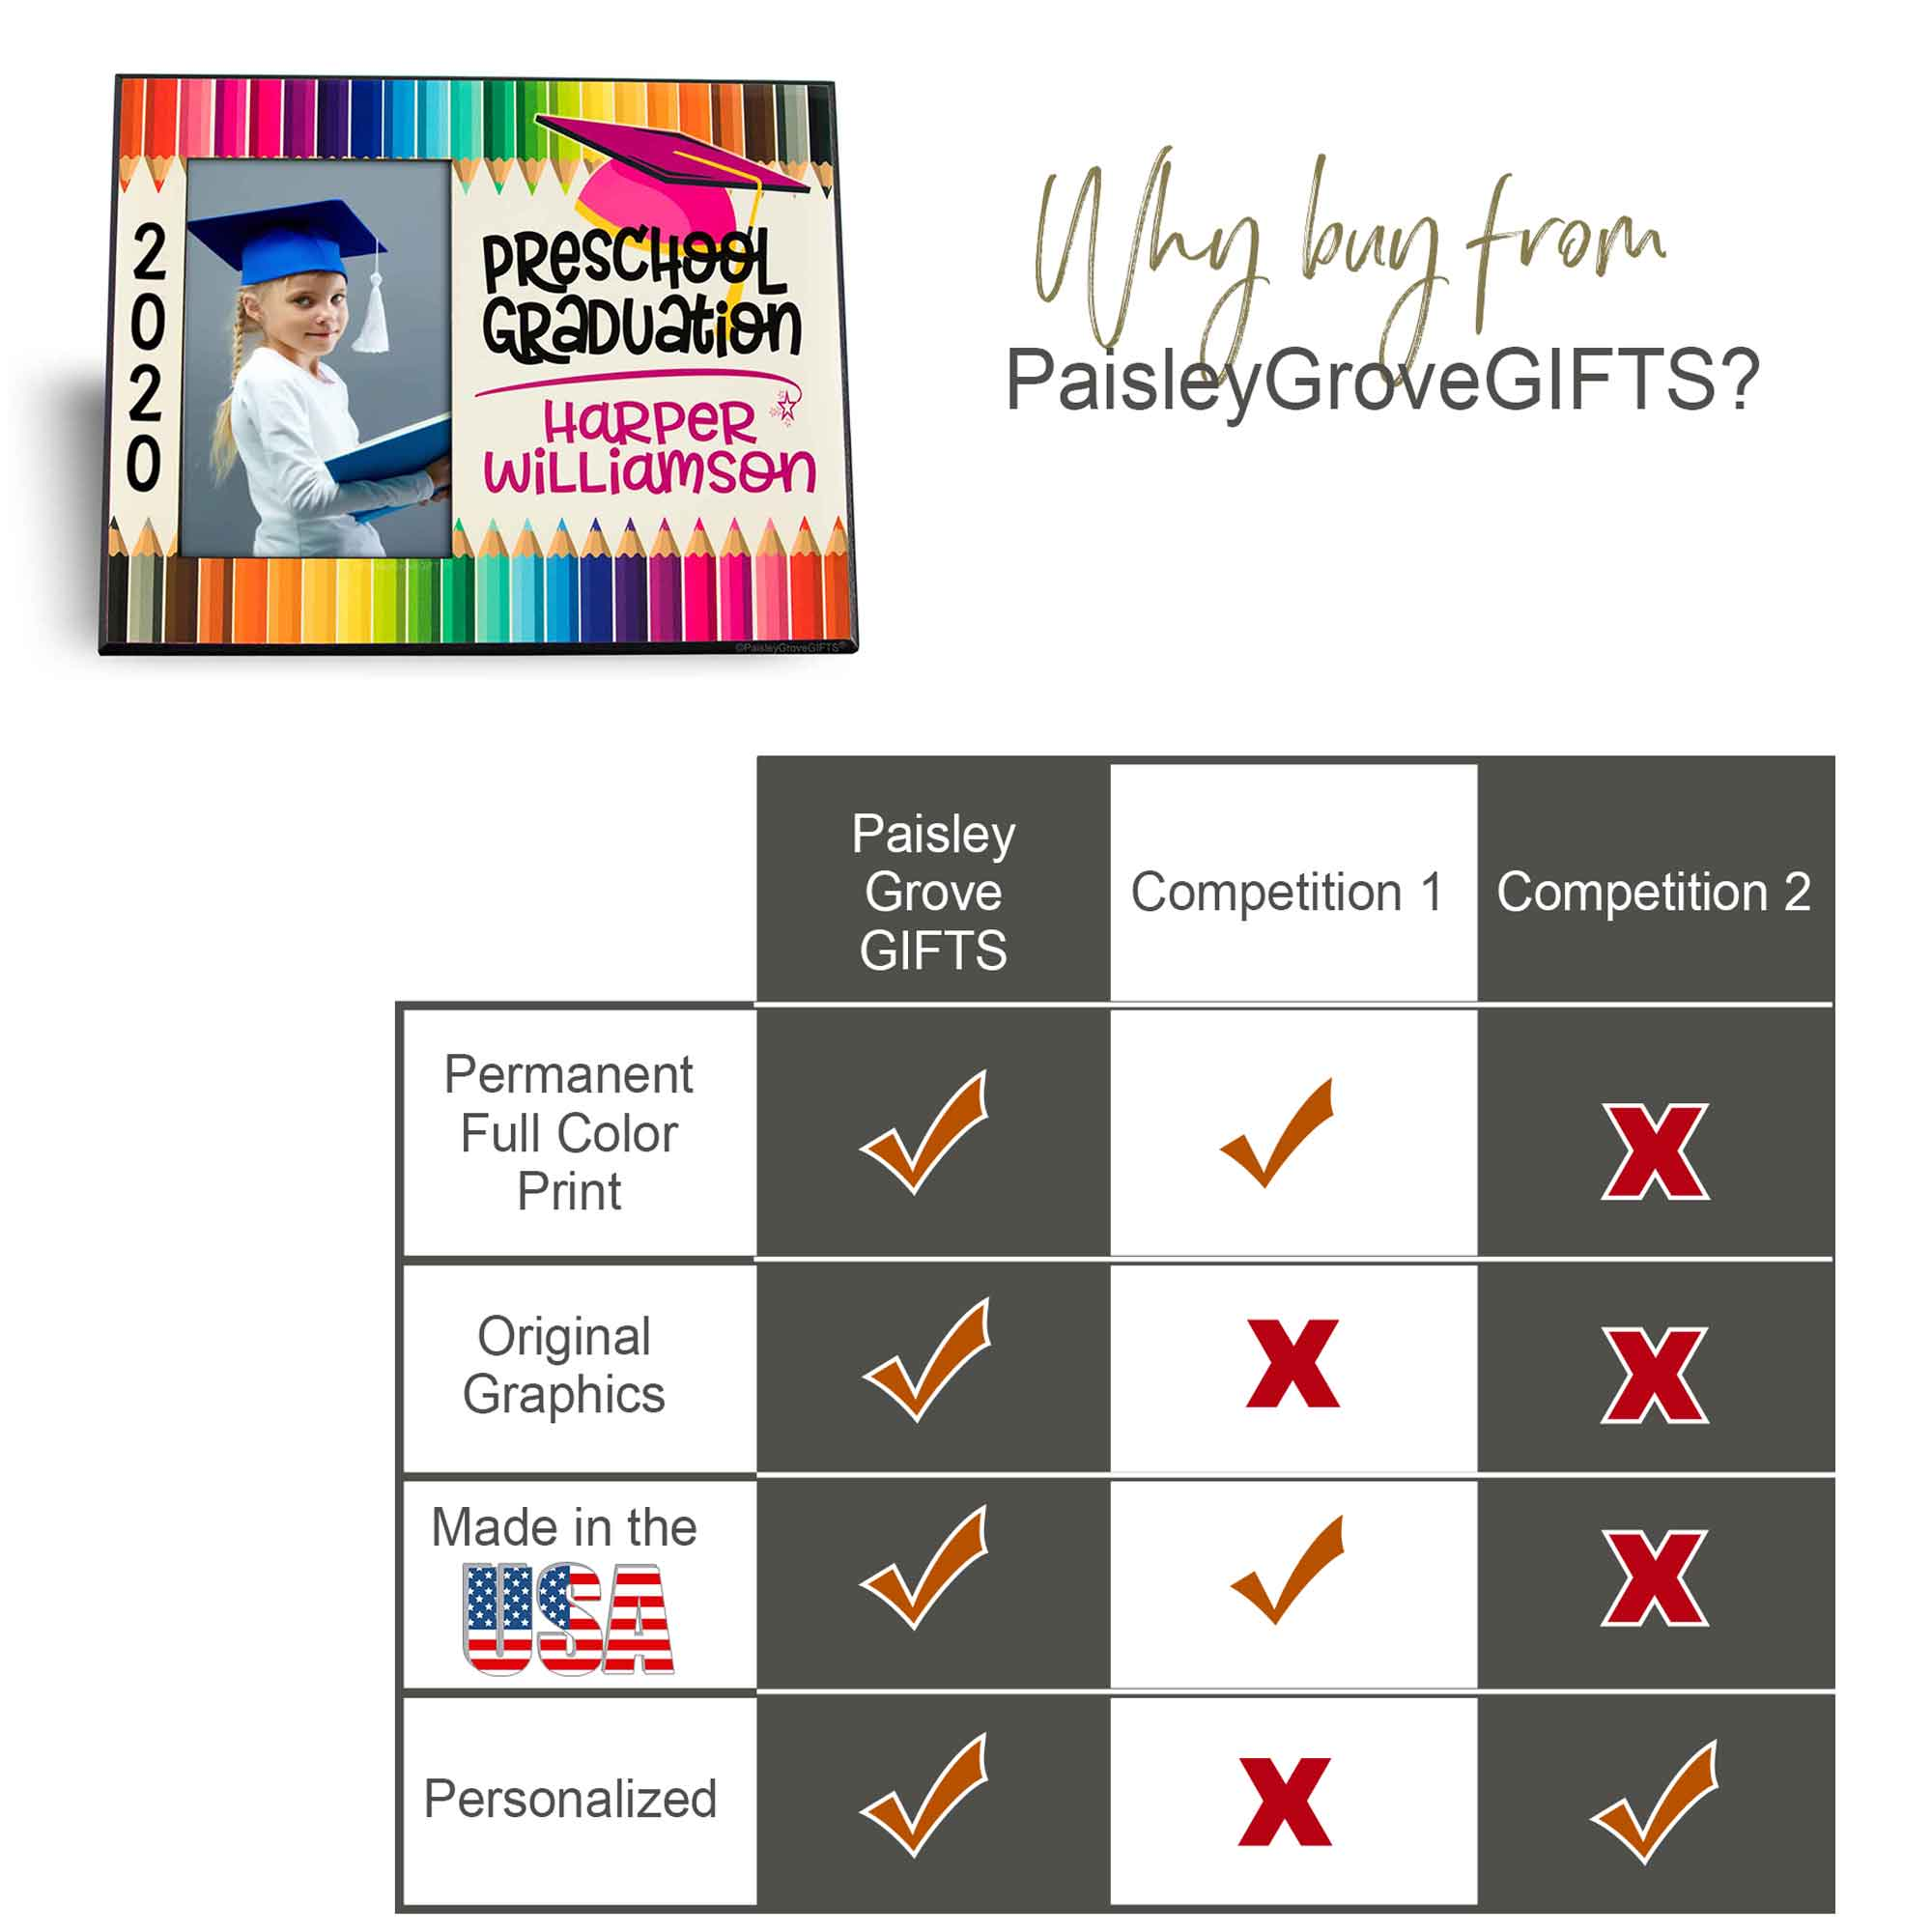 CopyrightPaisleyGroveGIFTS S228d Unique customized gift for preschool graduates, quality comparison chart